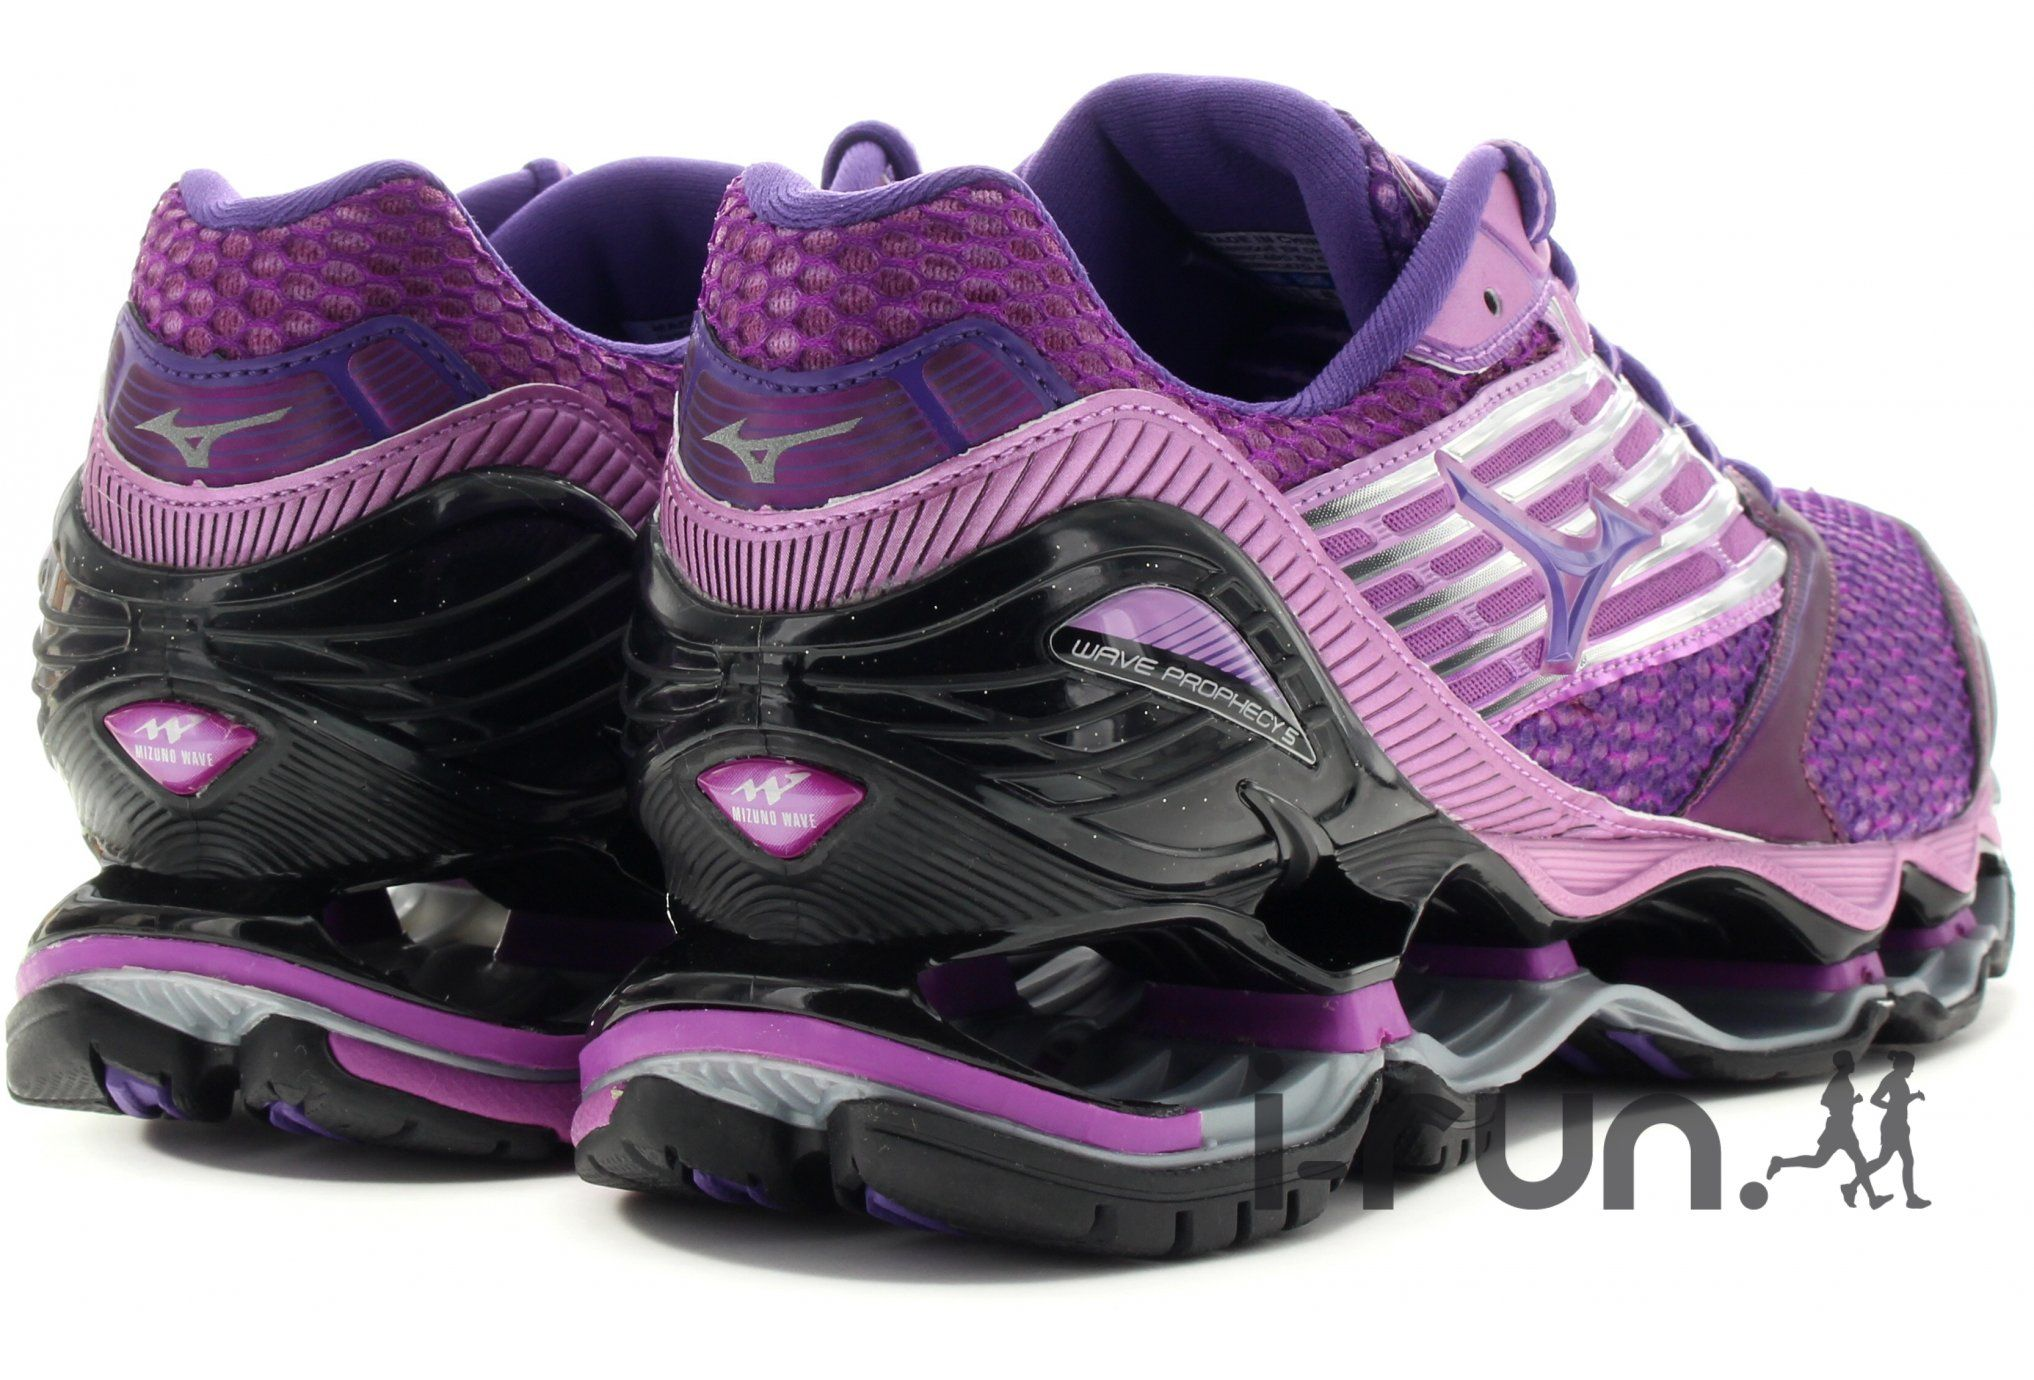 e0b04db837c Mizuno Wave Prophecy 5 W pas cher - Chaussures running femme running Route    chemin en